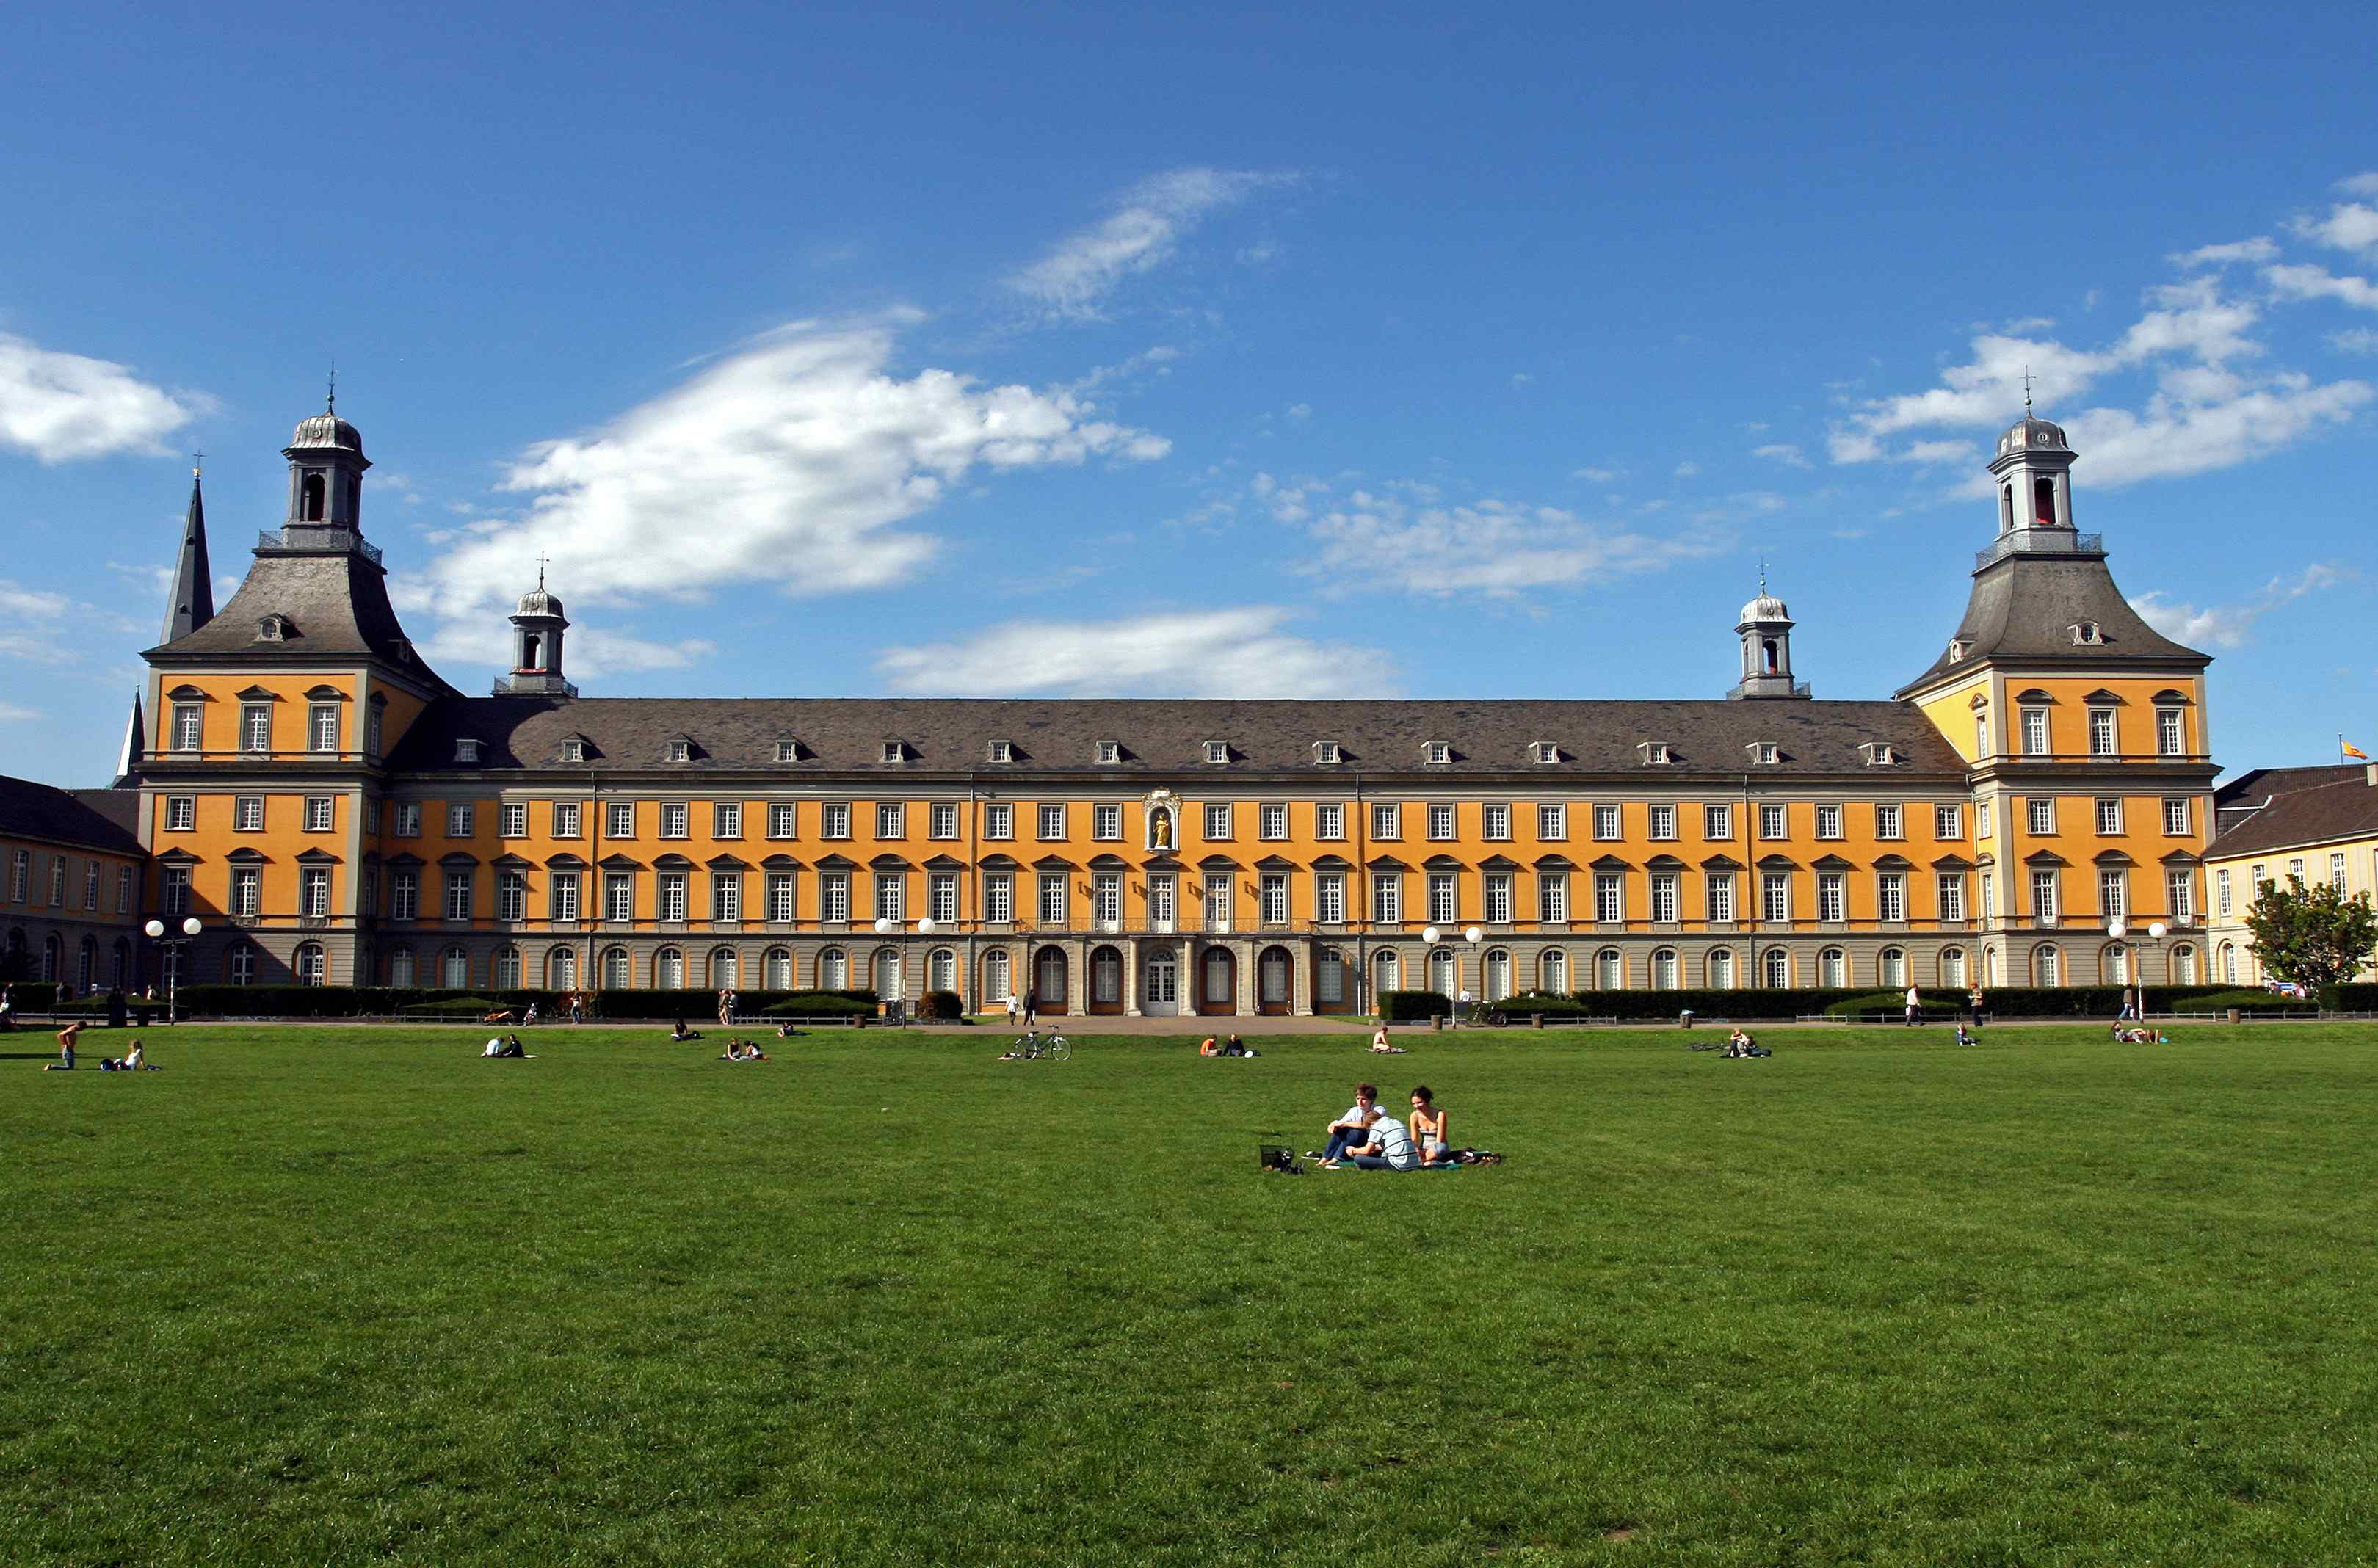 Central building of the university, Copyright: Dr. Thomas Mauersberg / University Bonn